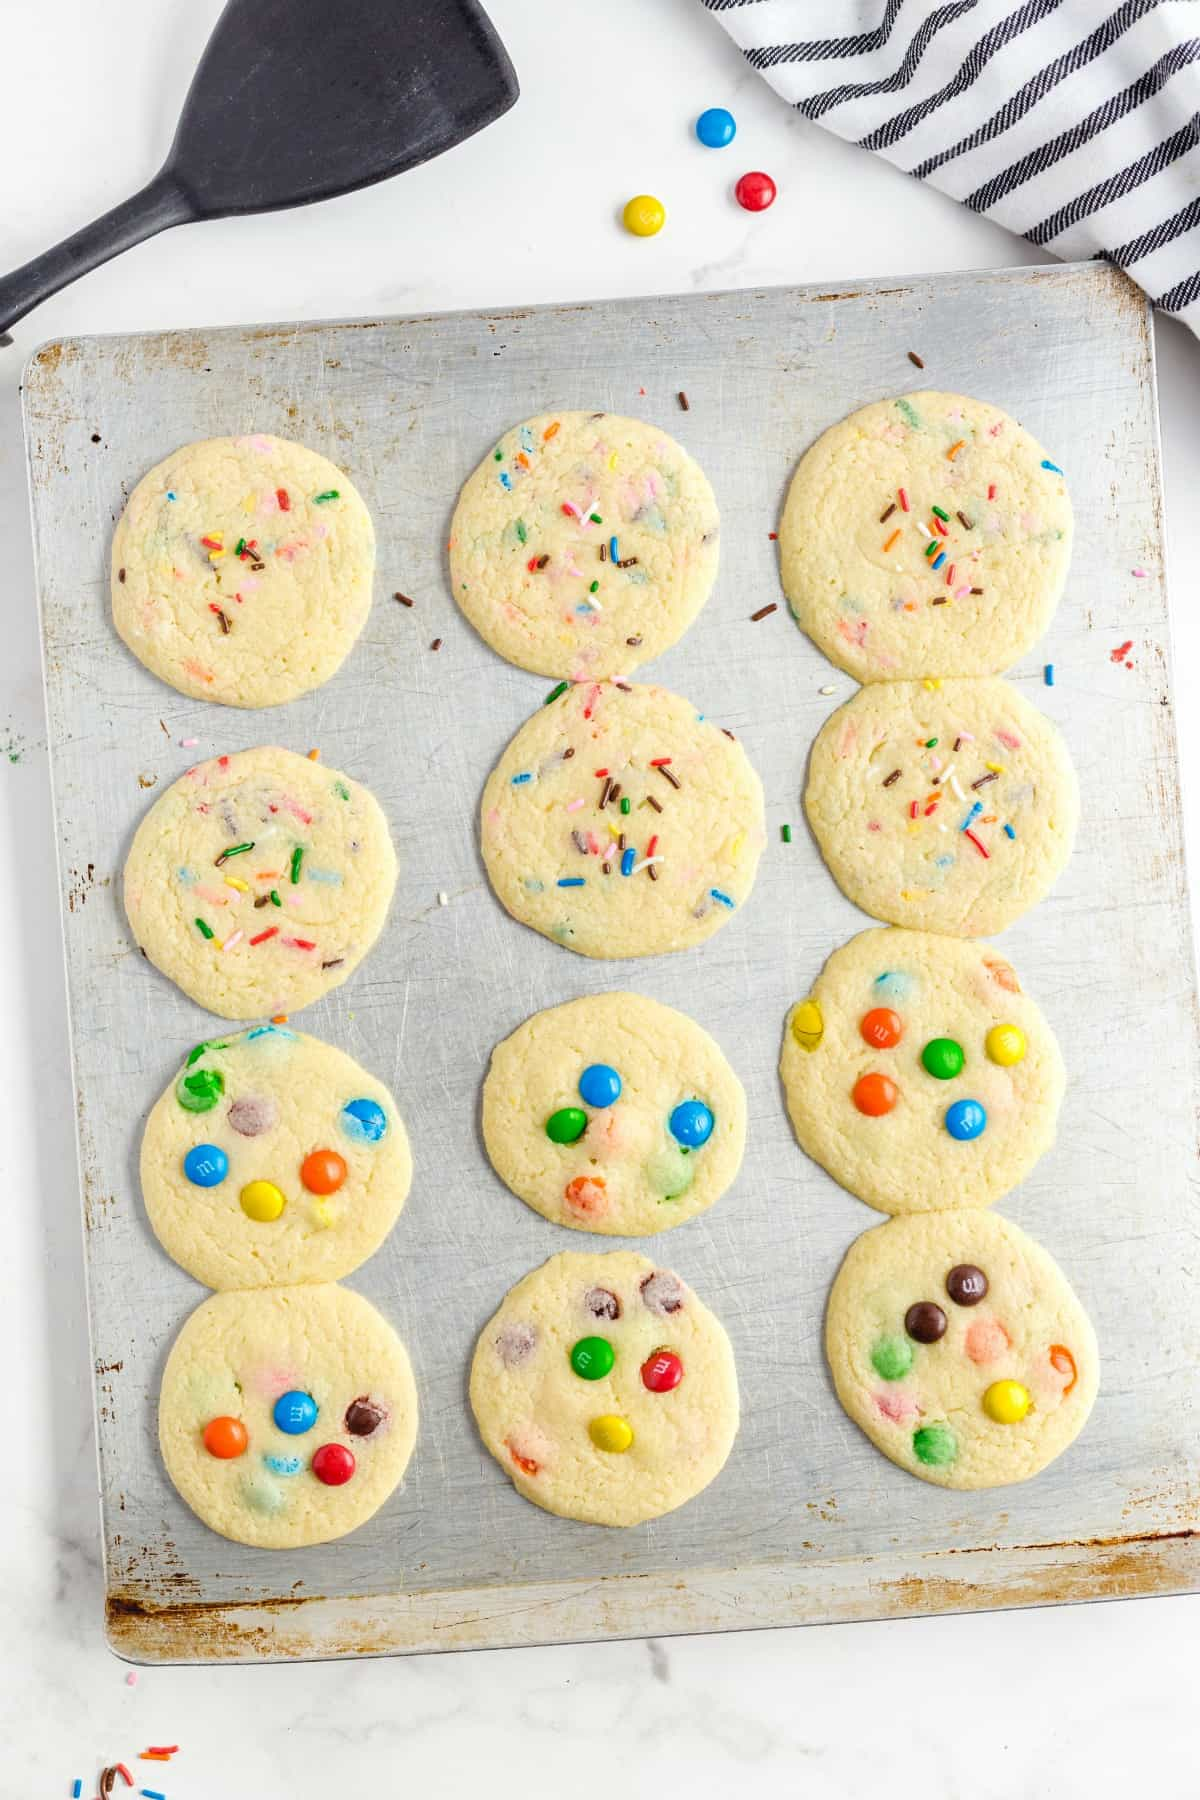 baked cookies on a tray